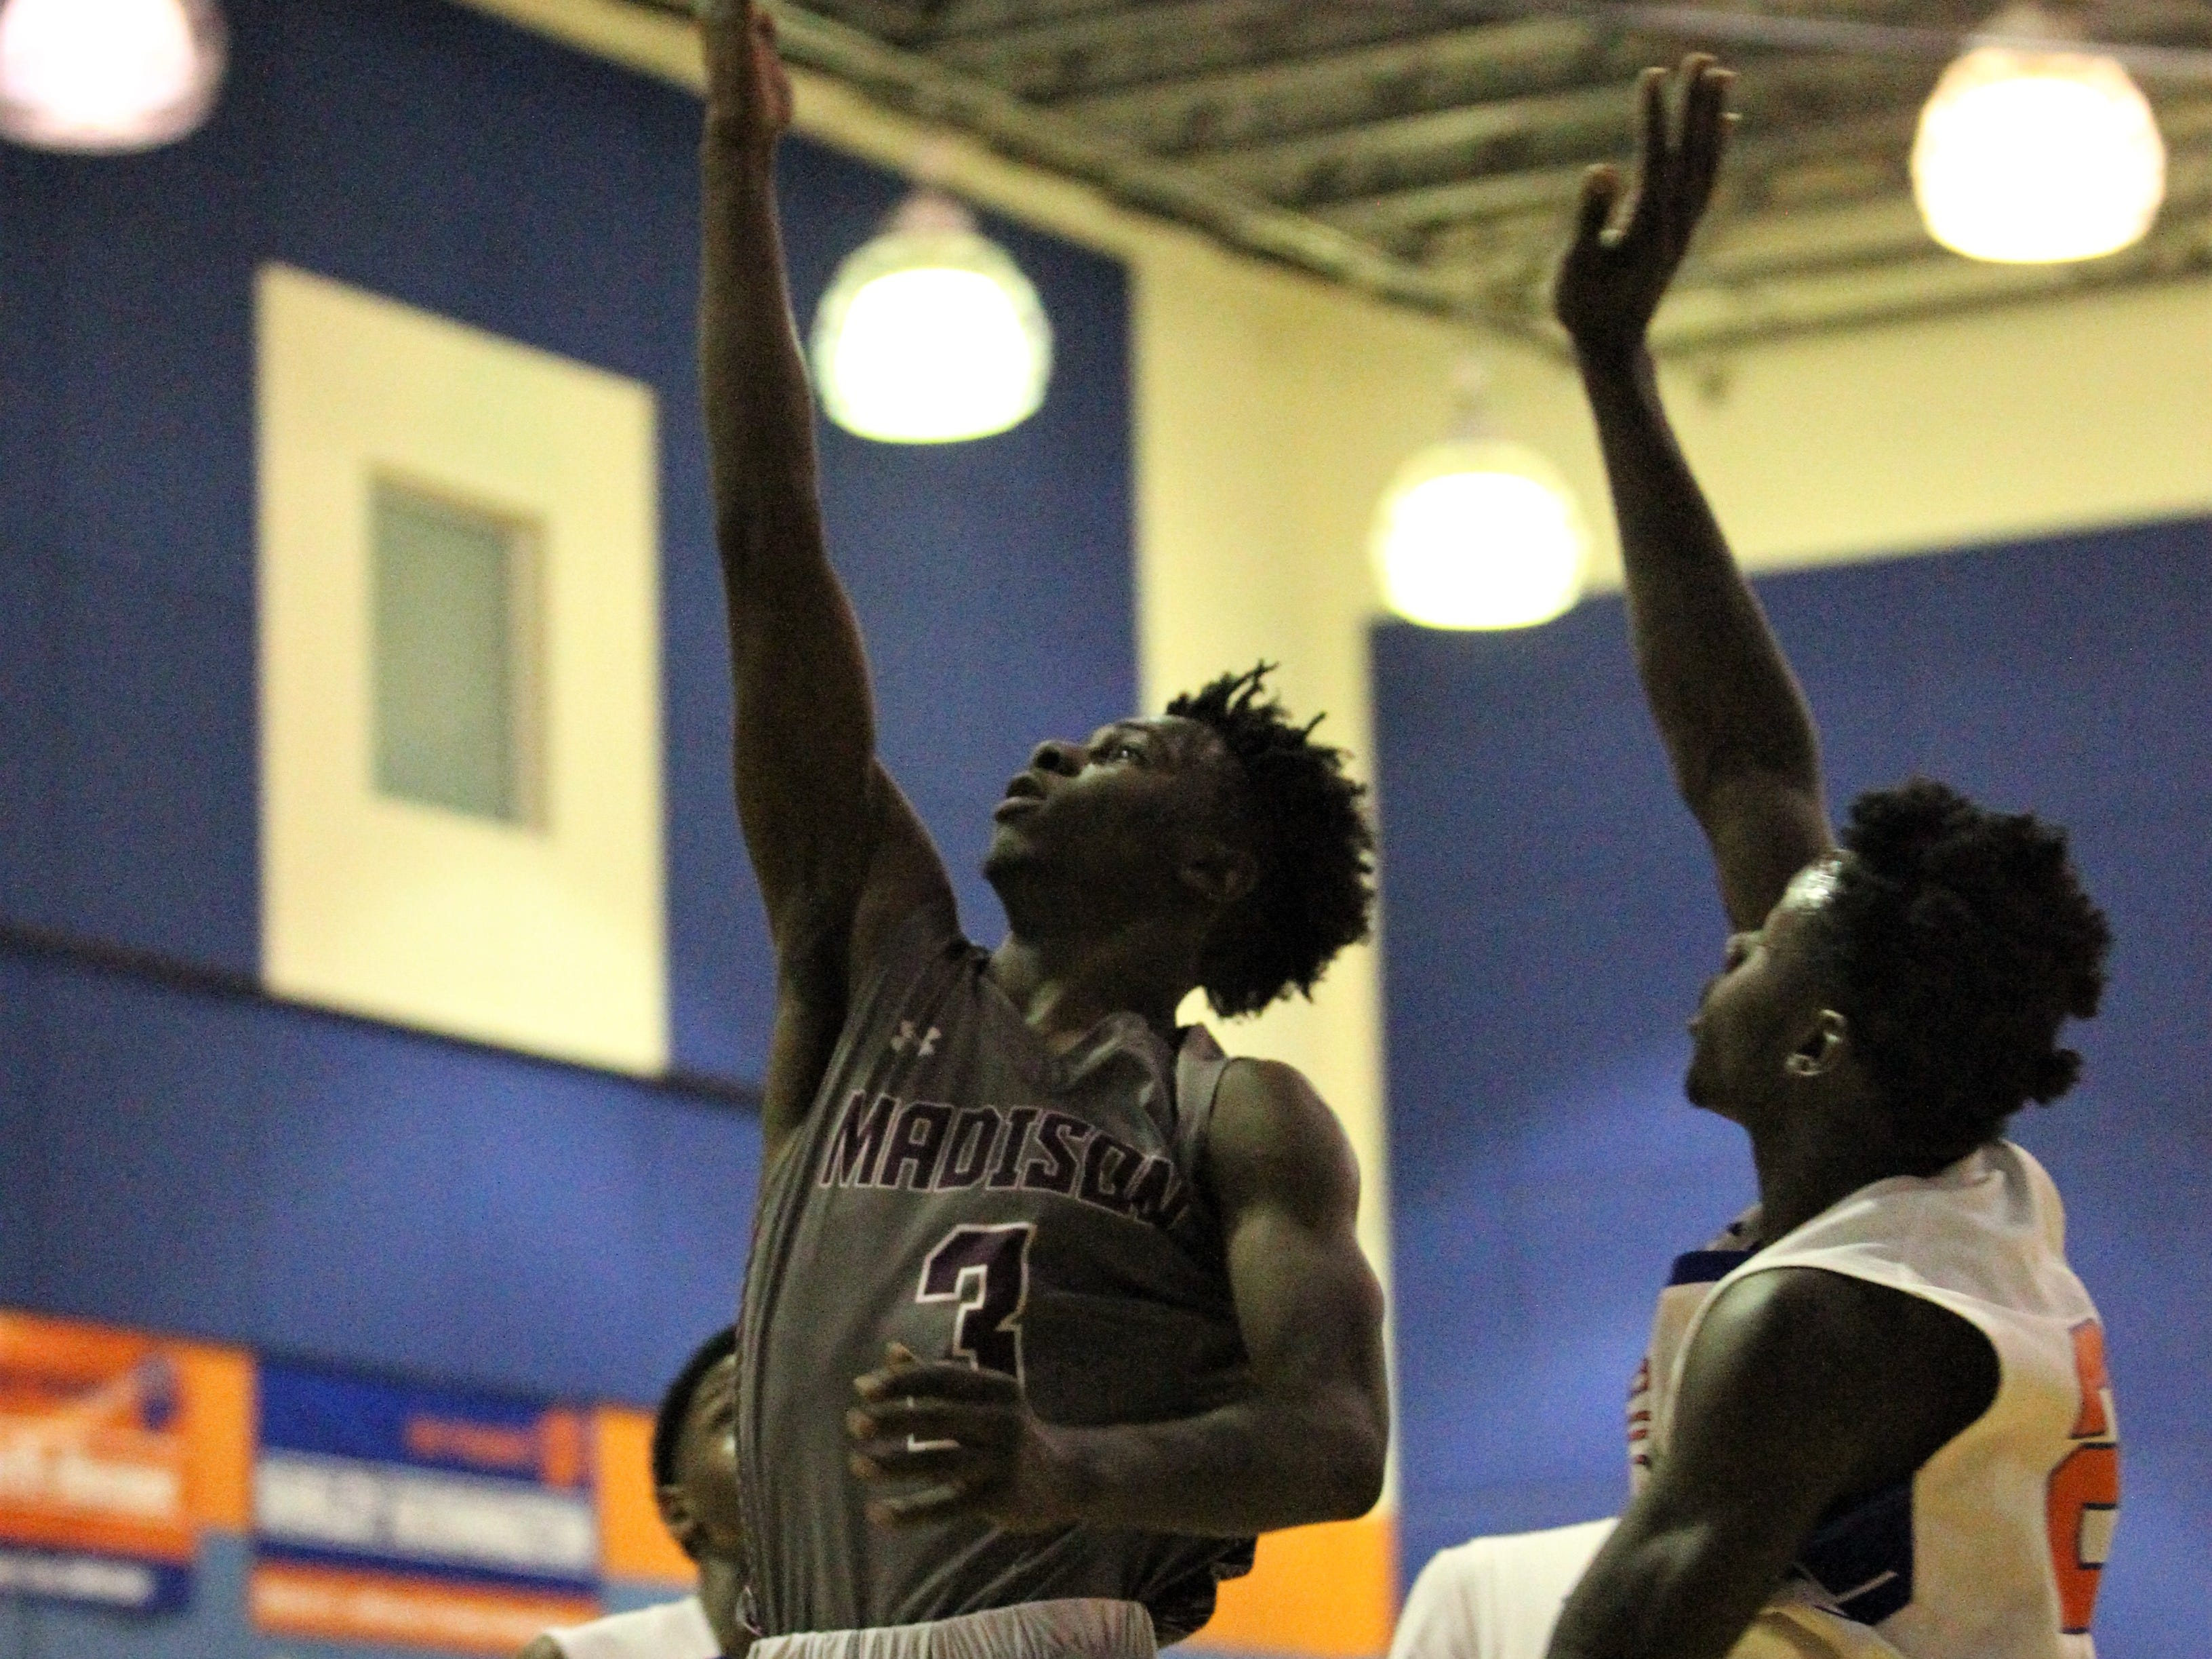 Chris Simmons soars for a layup as Madison County won 70-44 at Jefferson County on Jan. 3, 2019.